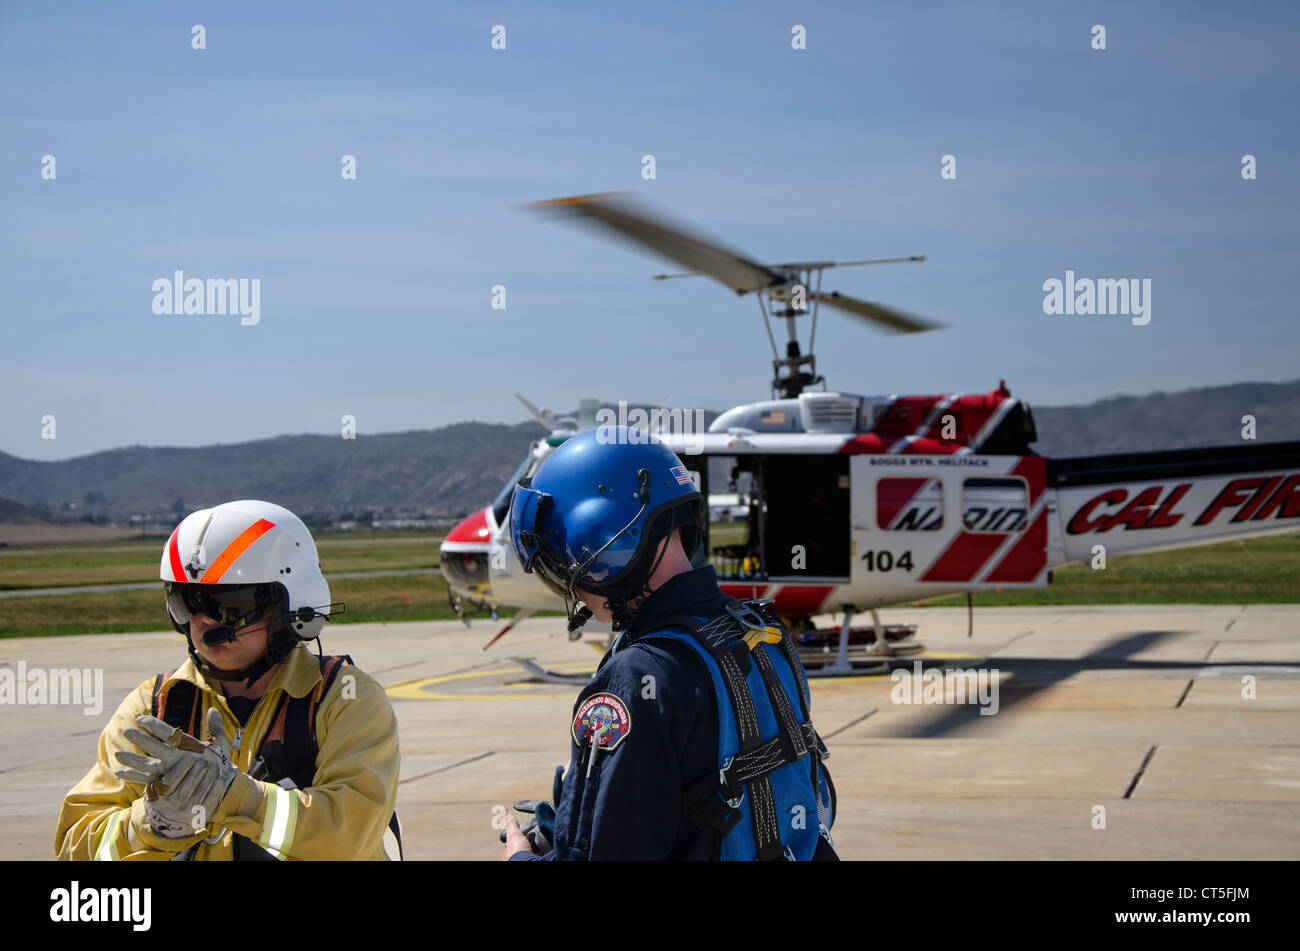 Photo of two members of a Fire Department Helicopter Rescue Team suited up for a training exercise. Helicopter in - Stock Image